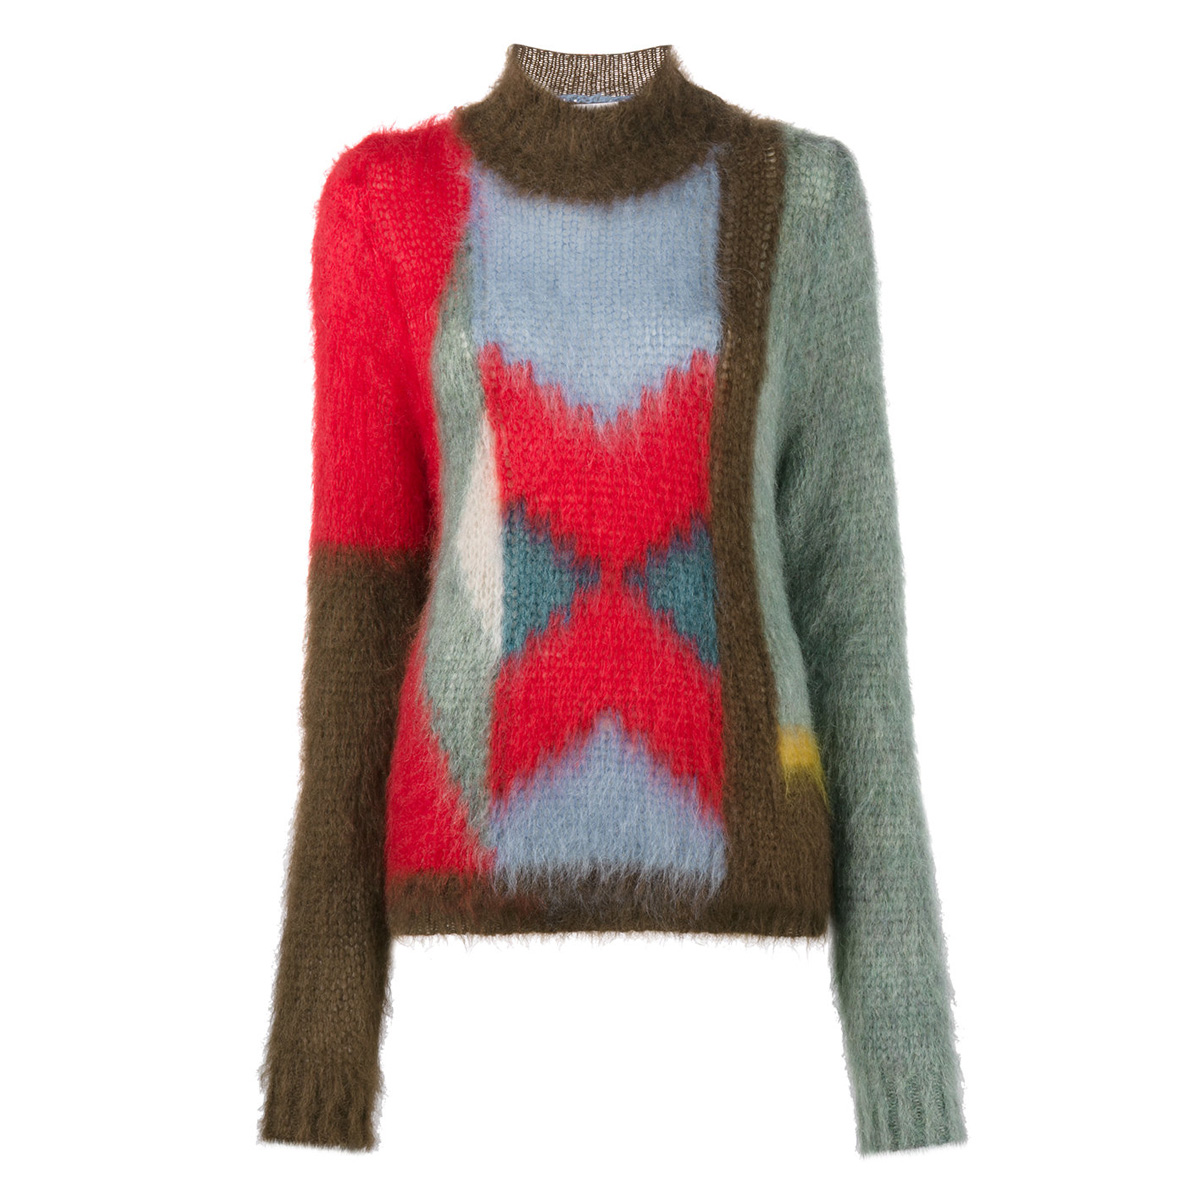 The Sweaters And Turtlenecks Our Editors Want Right Now Coveteur